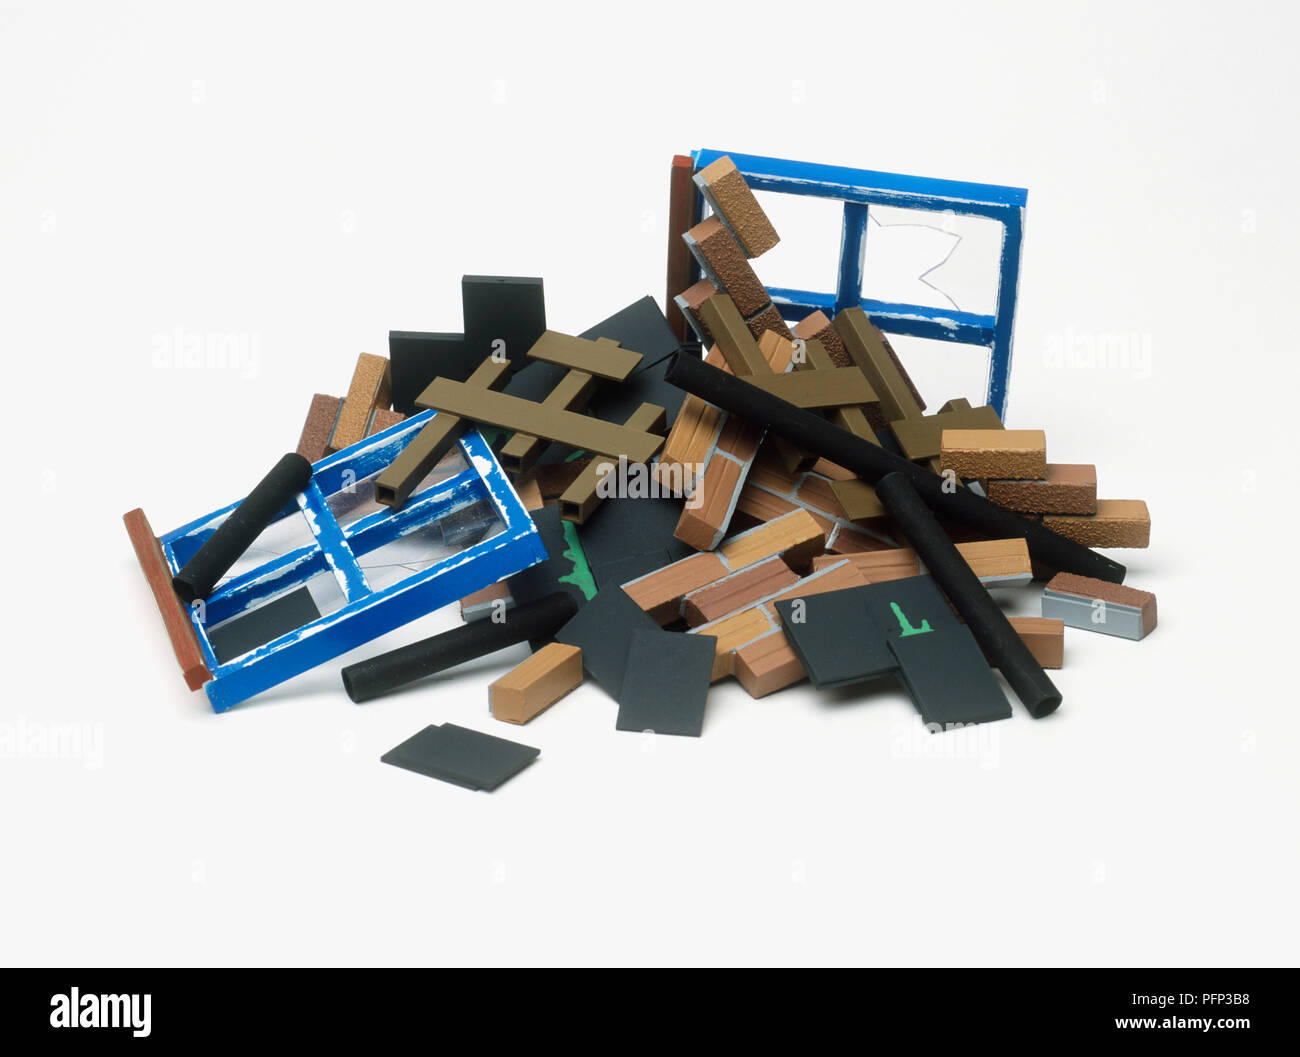 Heap of rubble from demolished house - Stock Image